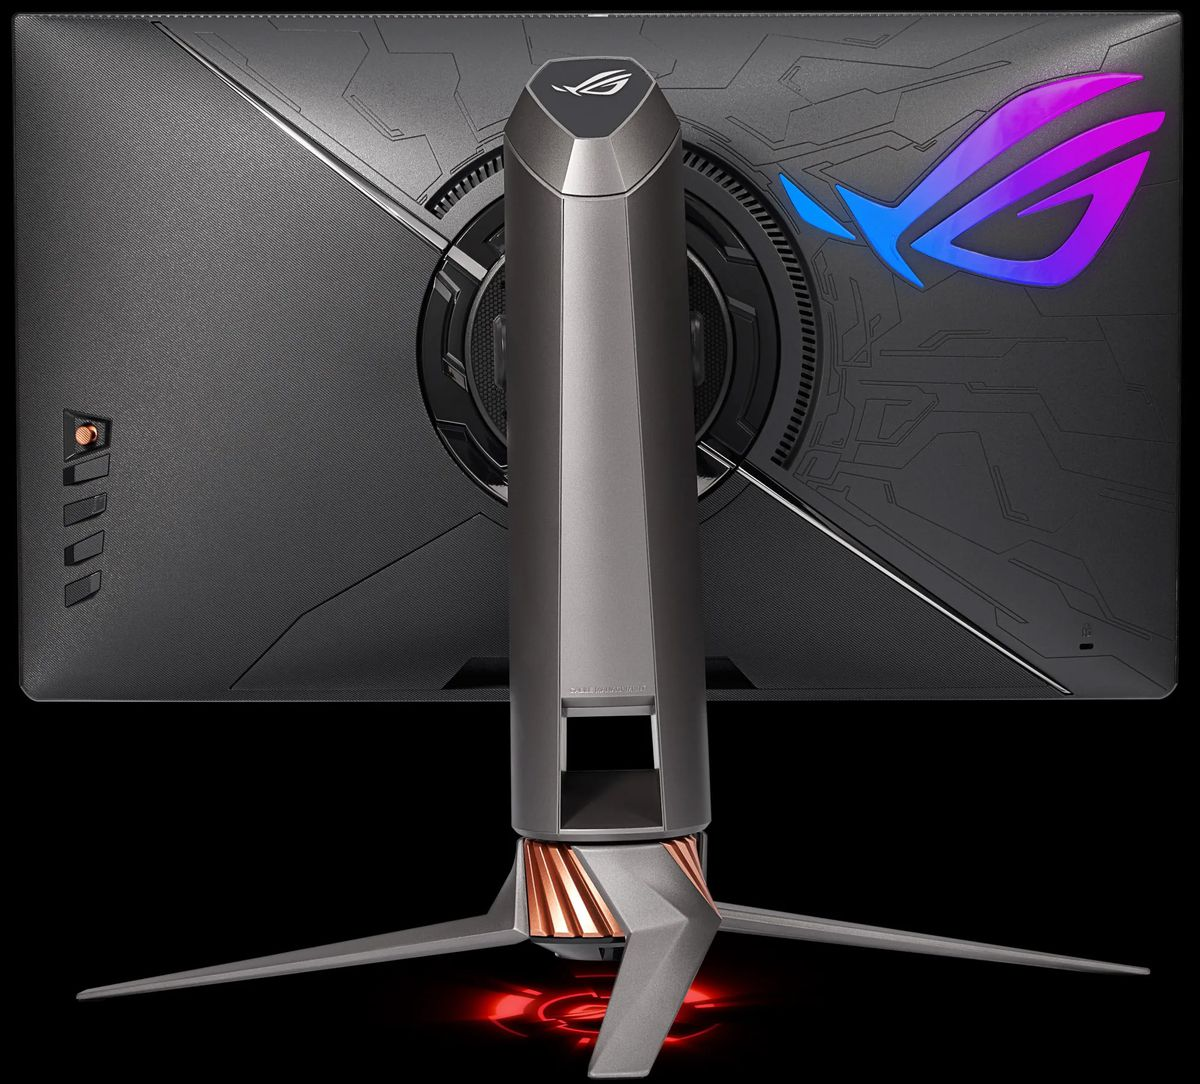 the back of the Asus ROG Swift 360Hz gaming monitor